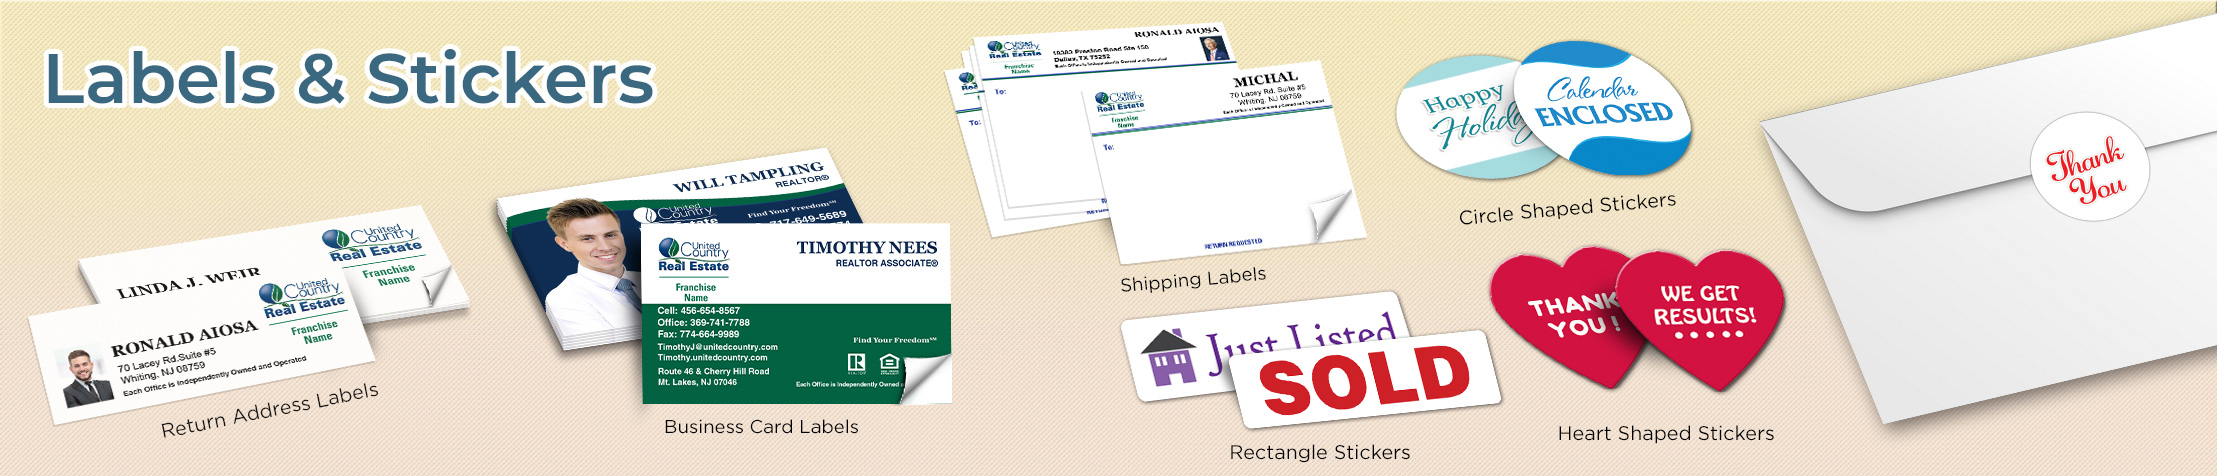 United Country Real Estate Labels and Stickers - United Country Real Estate  business card labels, return address labels, shipping labels, and assorted stickers | BestPrintBuy.com